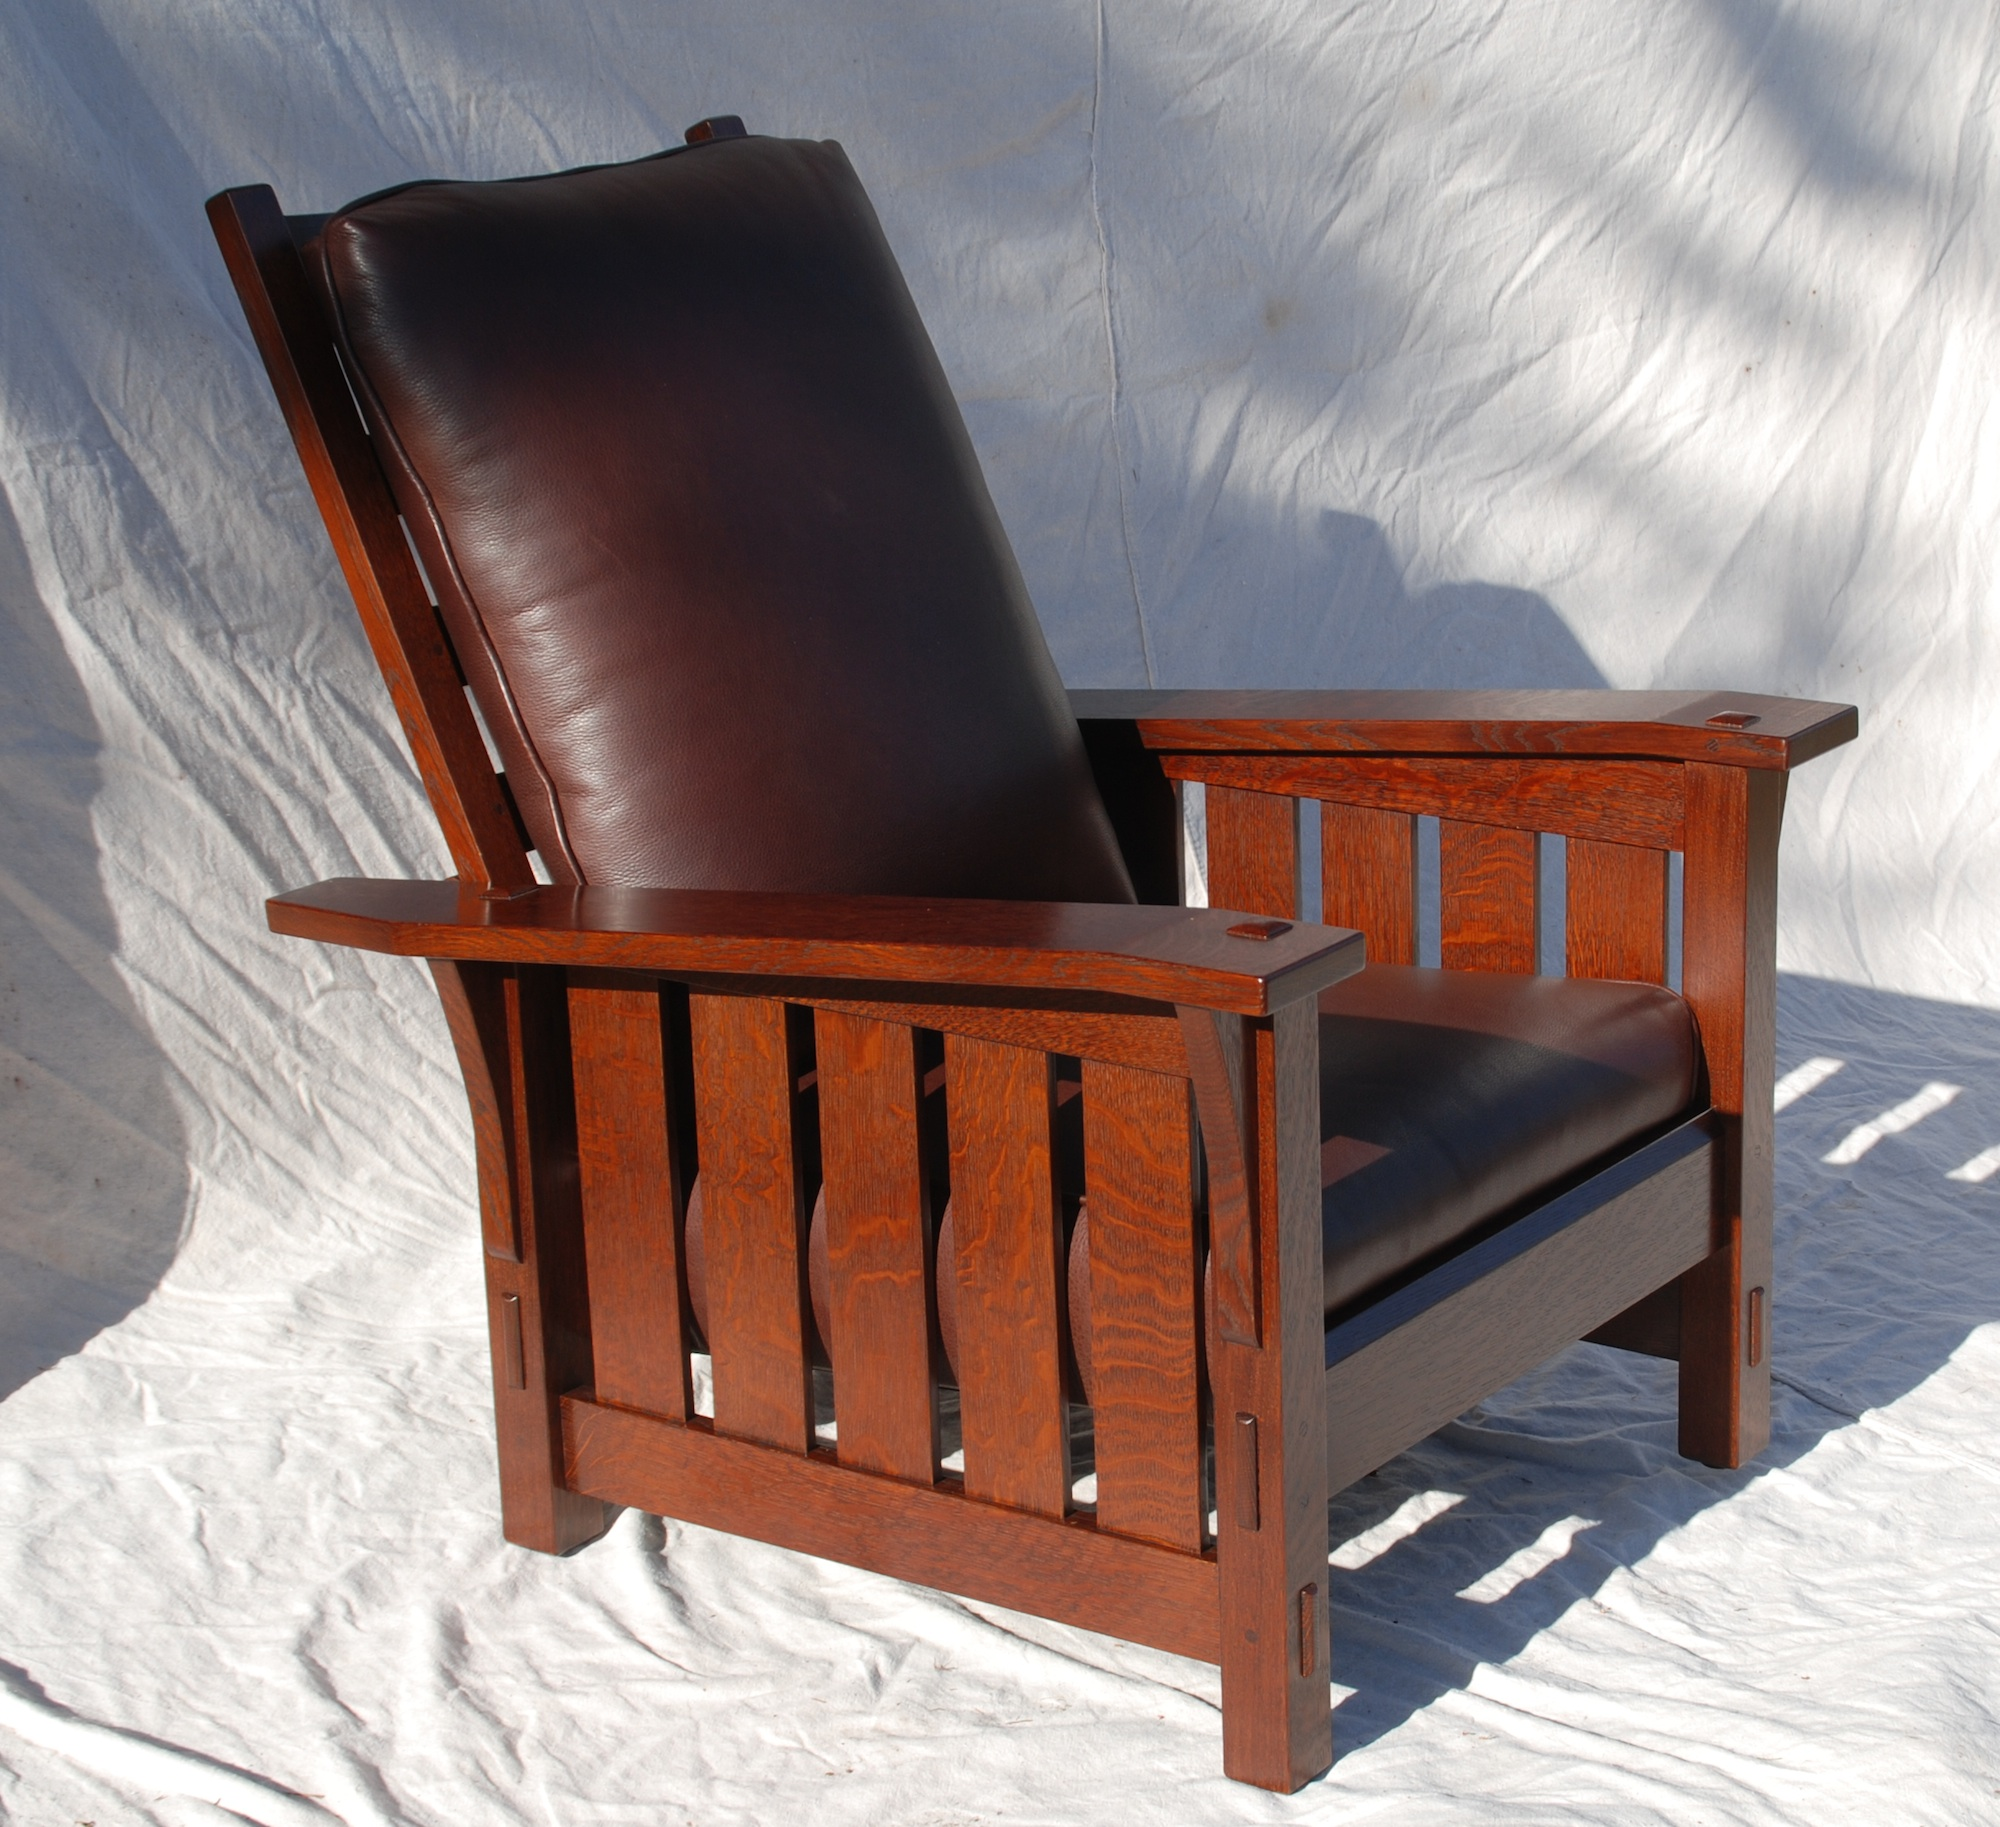 Attractive Gustav Stickley Inspired Medium Size Slant Arm Reclining Morris Chair